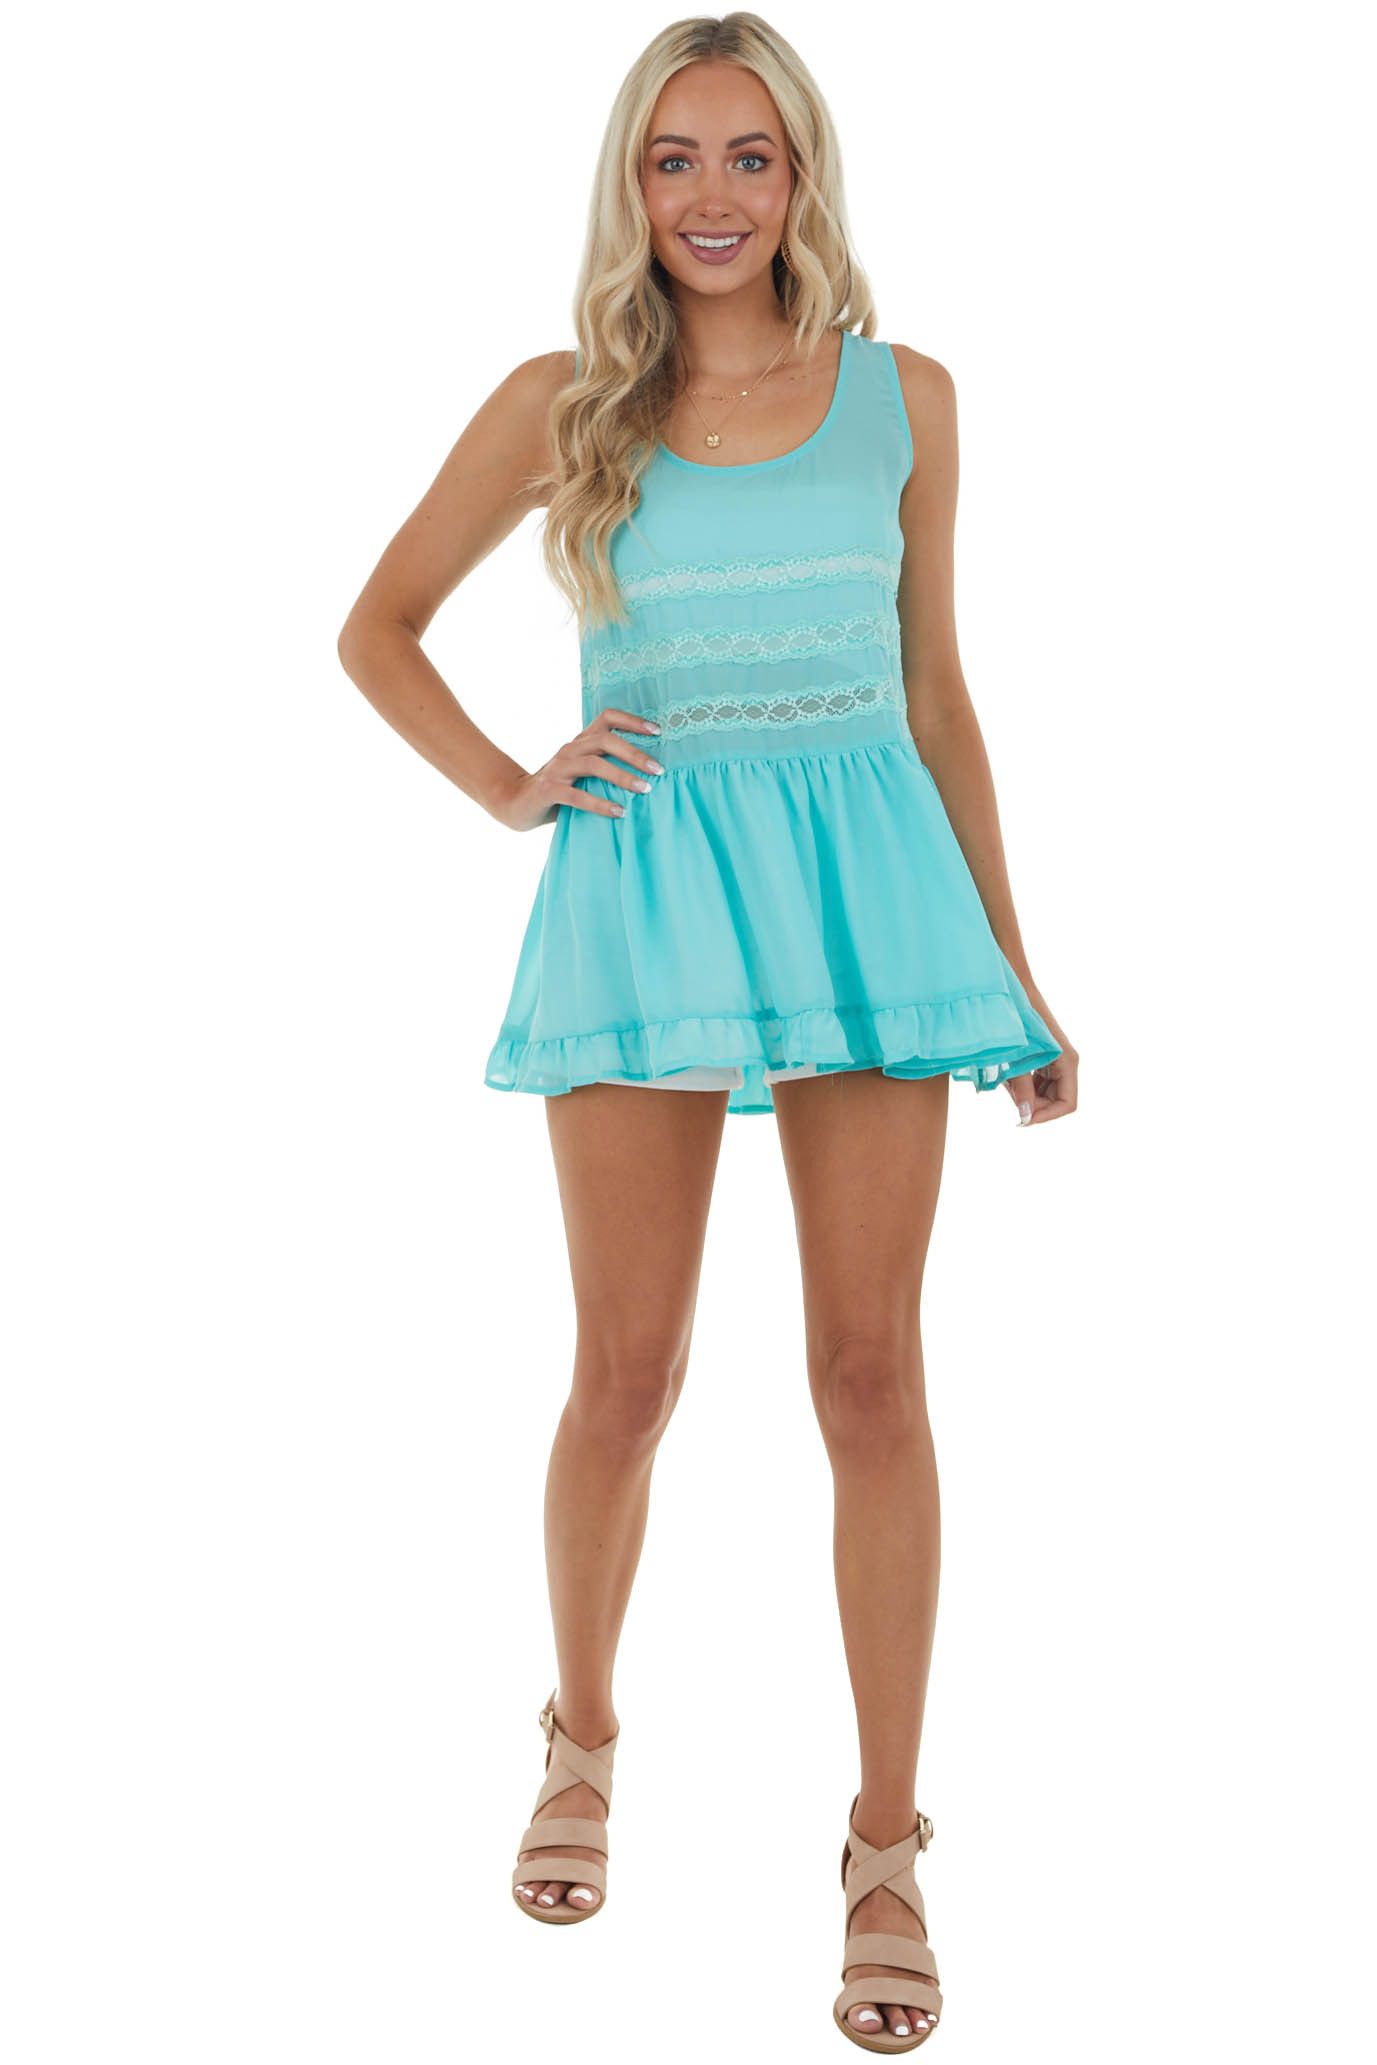 Turquoise Sleeveless Sheer Tank Top with Lace Turquoise Sleeveless Sheer Tank Top with Lace